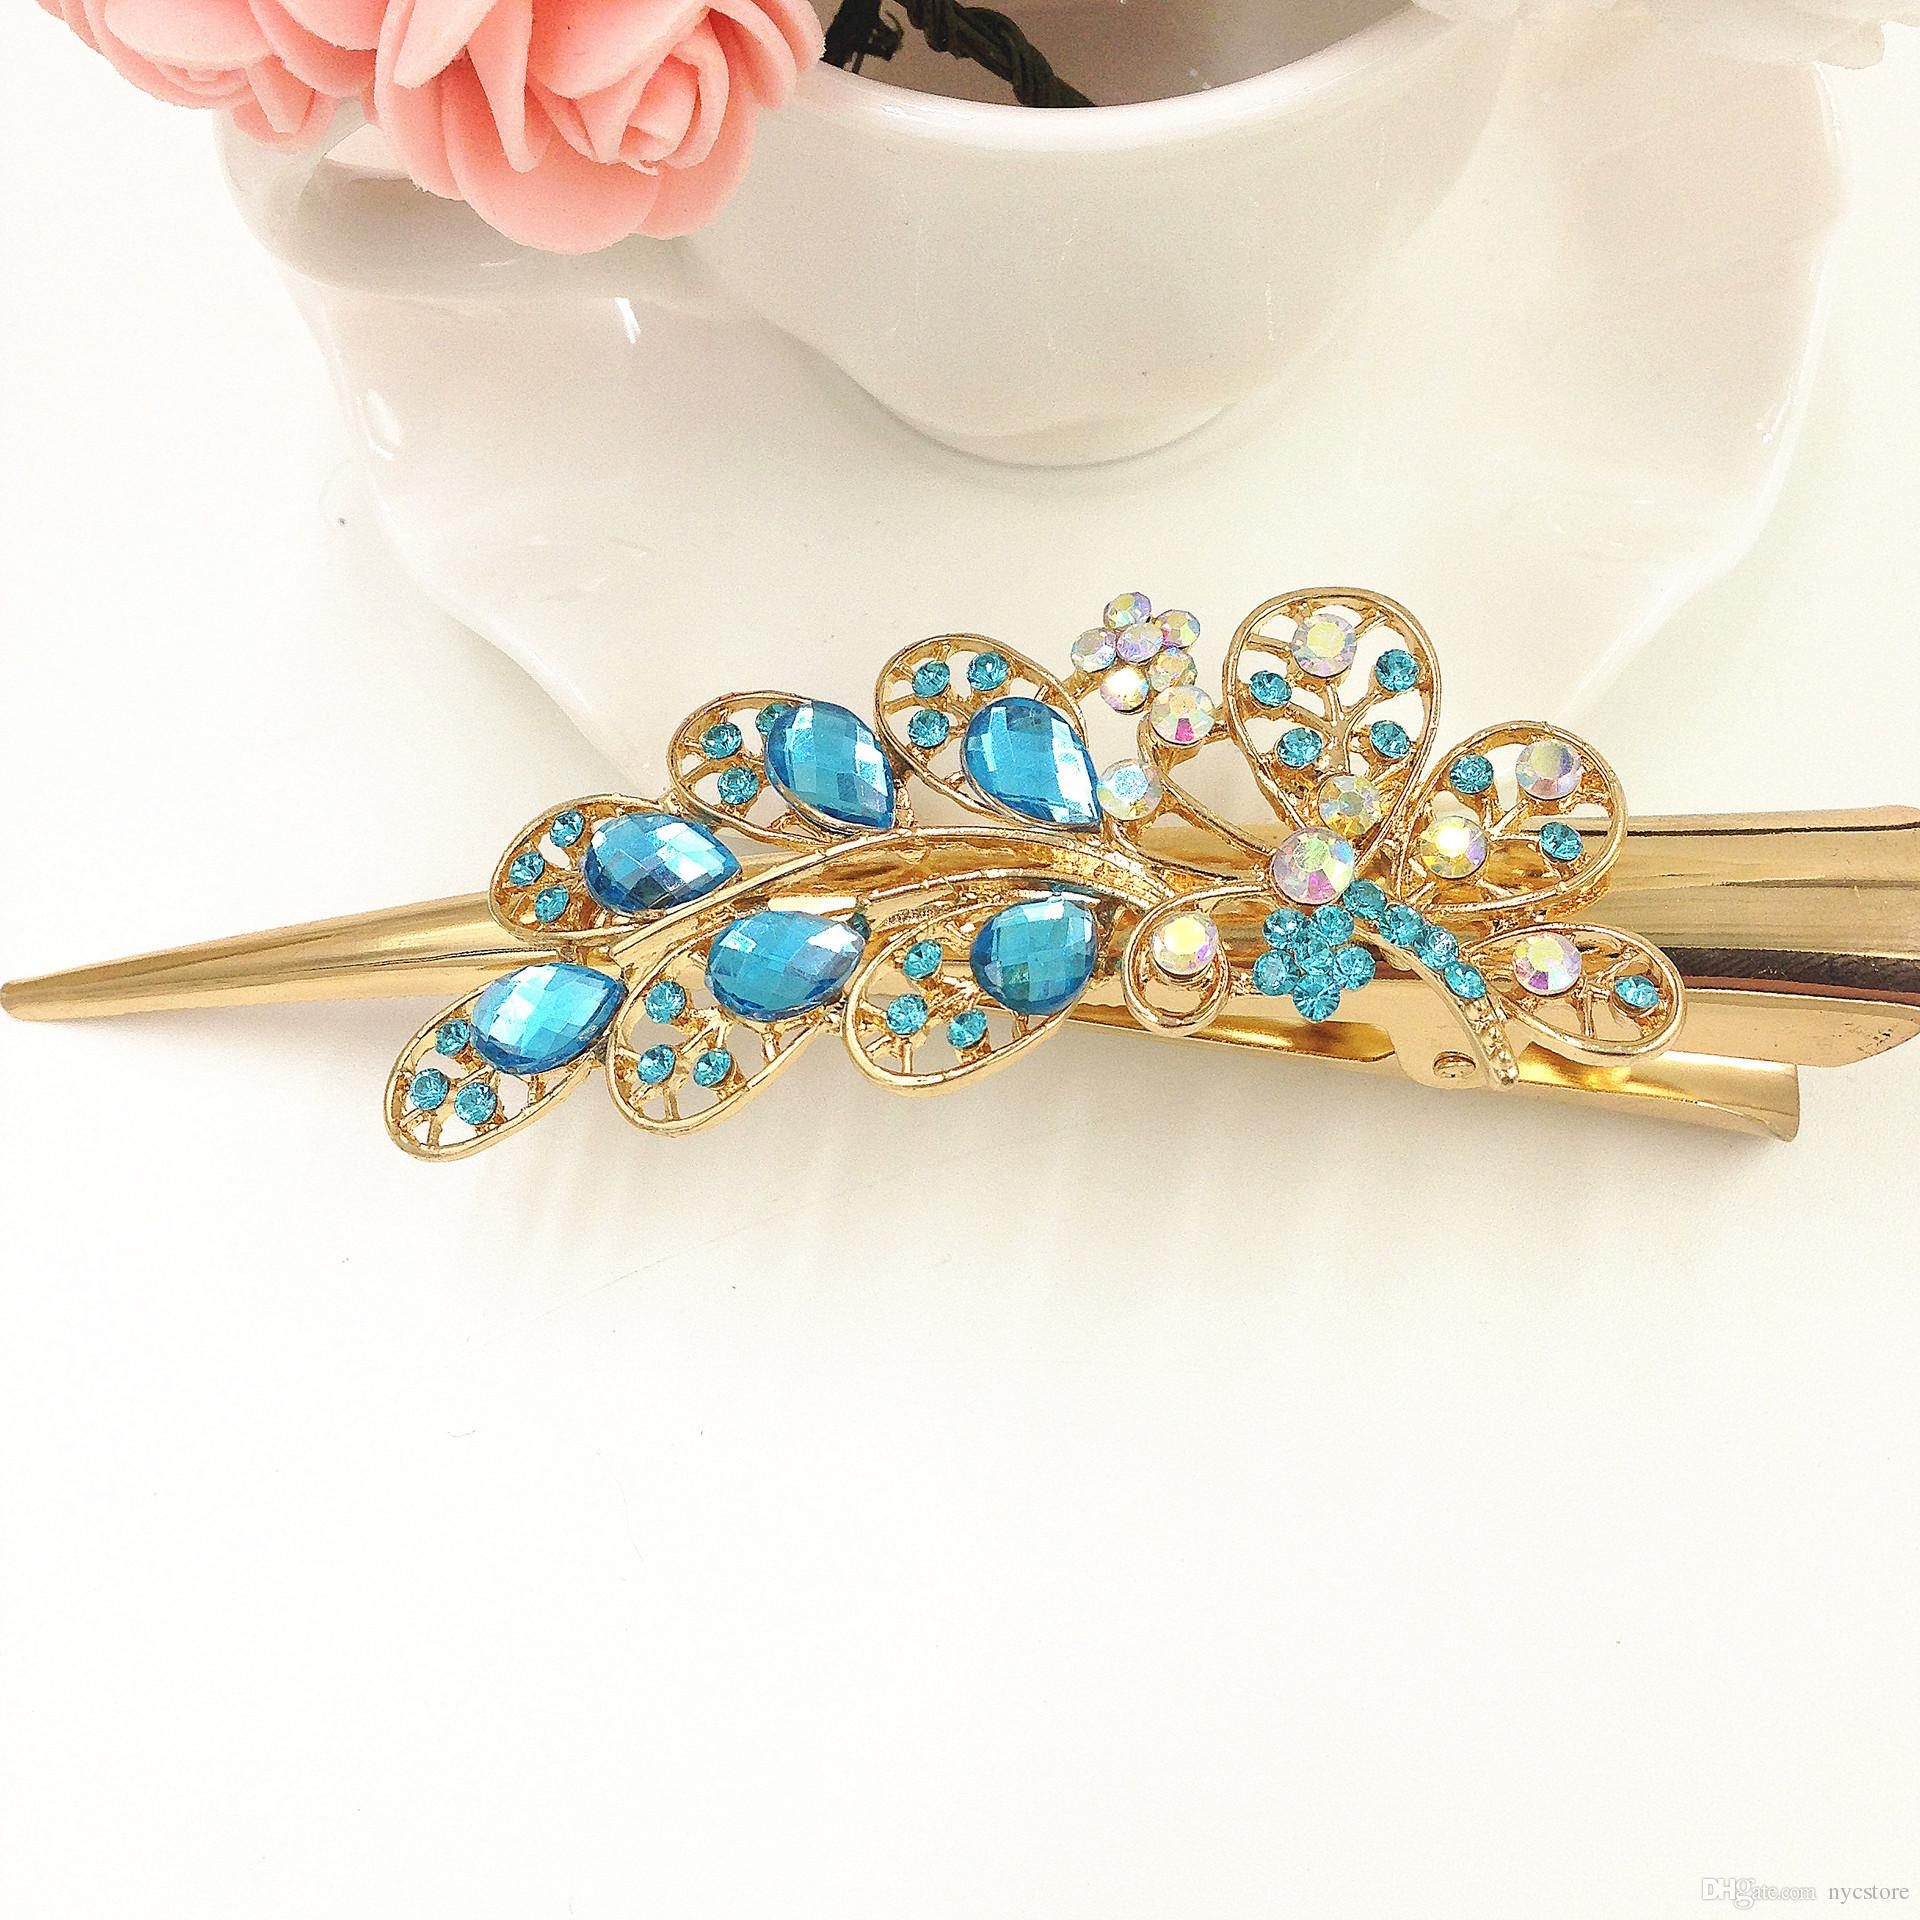 Alloy crystal flowers horn shape large mouth hair clips women fashion hairclips hairpins hair barrettes wedding favors